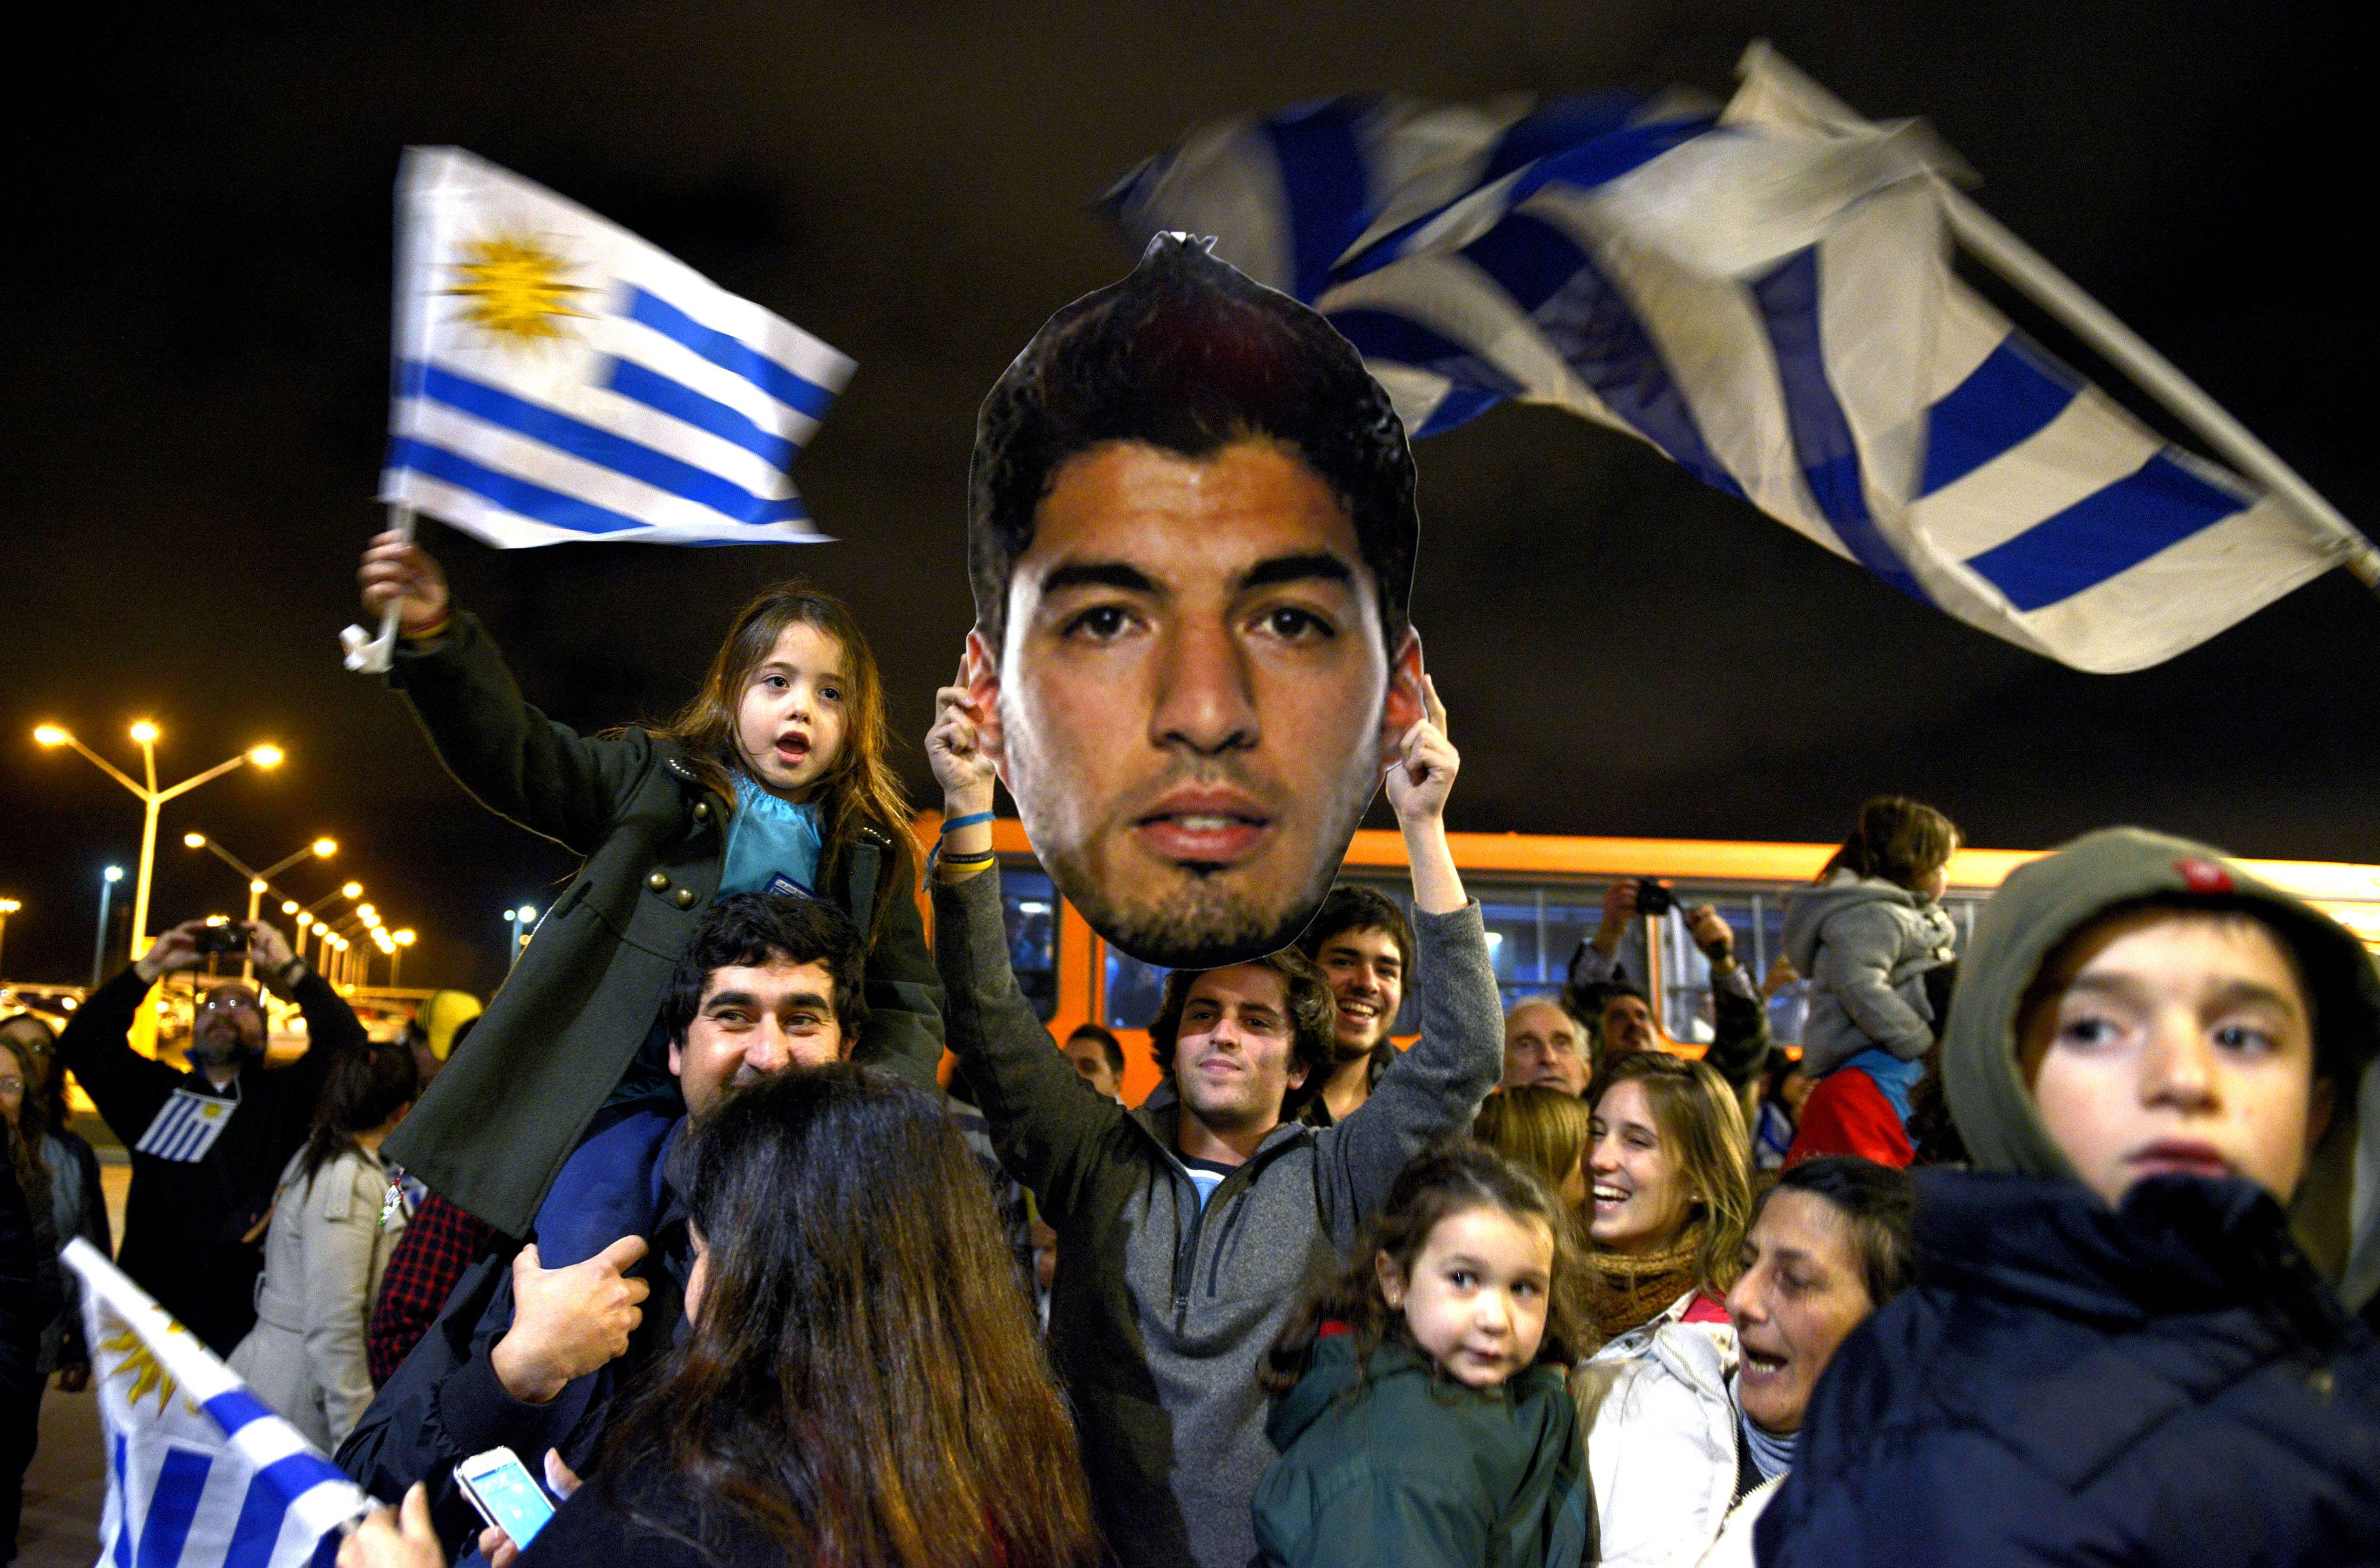 Fans of Uruguay's national soccer team await the arrival of Uruguay player Luis Suarez at Carrasco International Airport in the outskirts of Montevideo, Uruguay, Thursday, June 26, 2014. The Uruguay forward was banned by FIFA from all football for four months on Thursday for biting an Italian opponent.